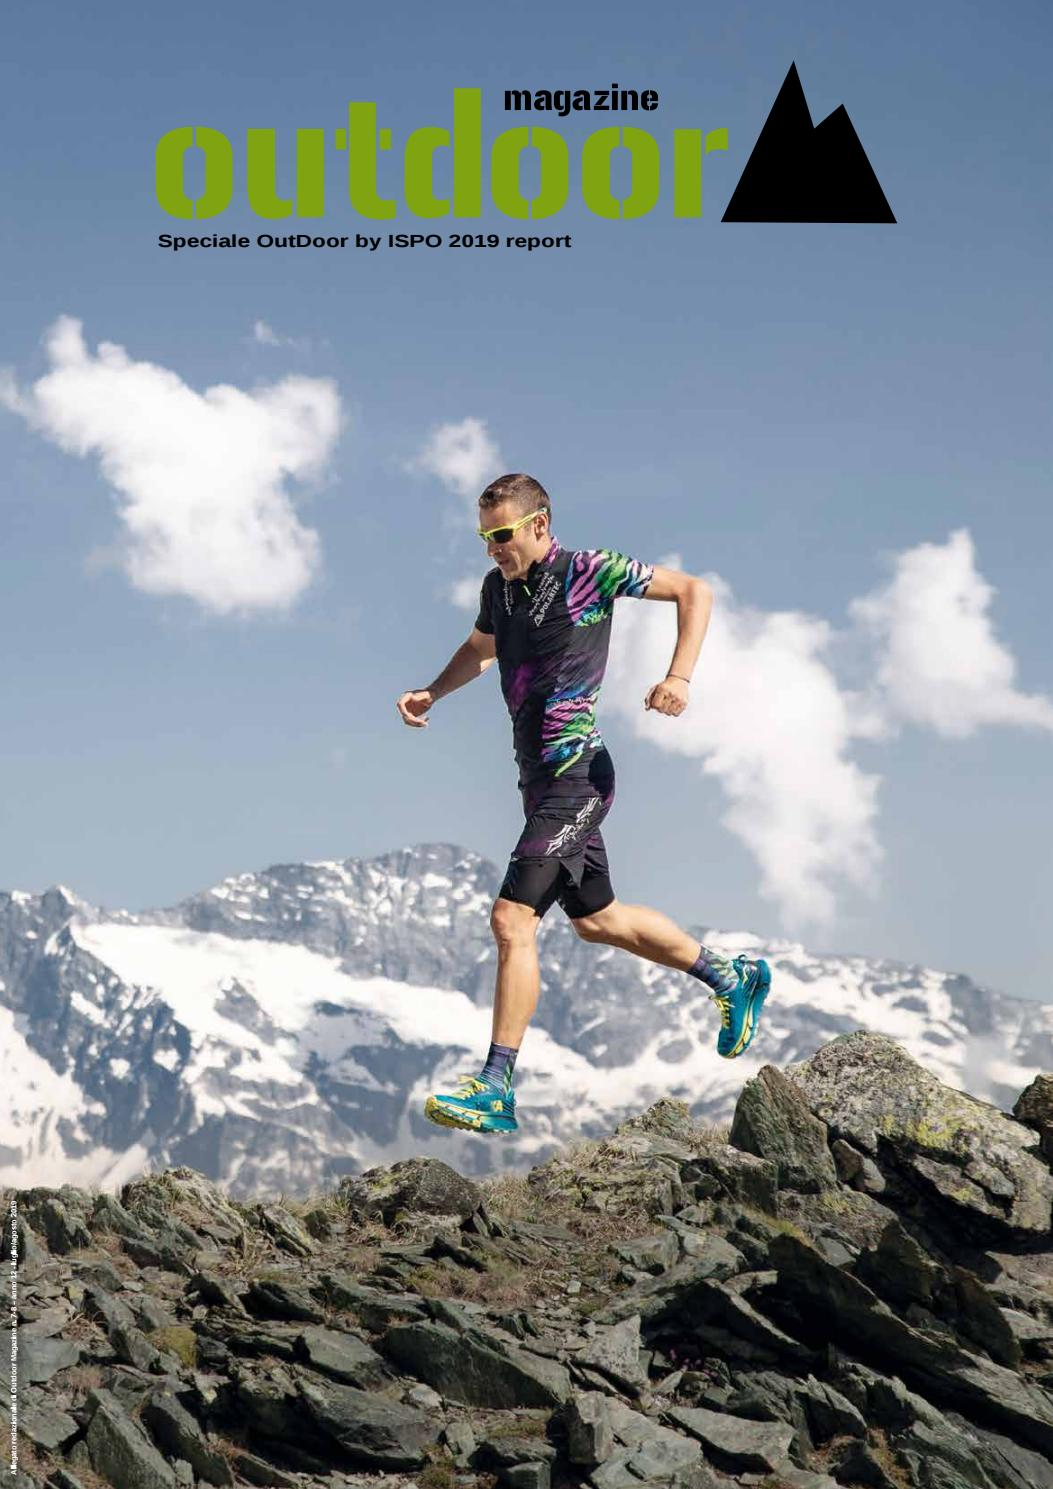 Outdoor Magazine 78 2019 Report by Sport Press issuu